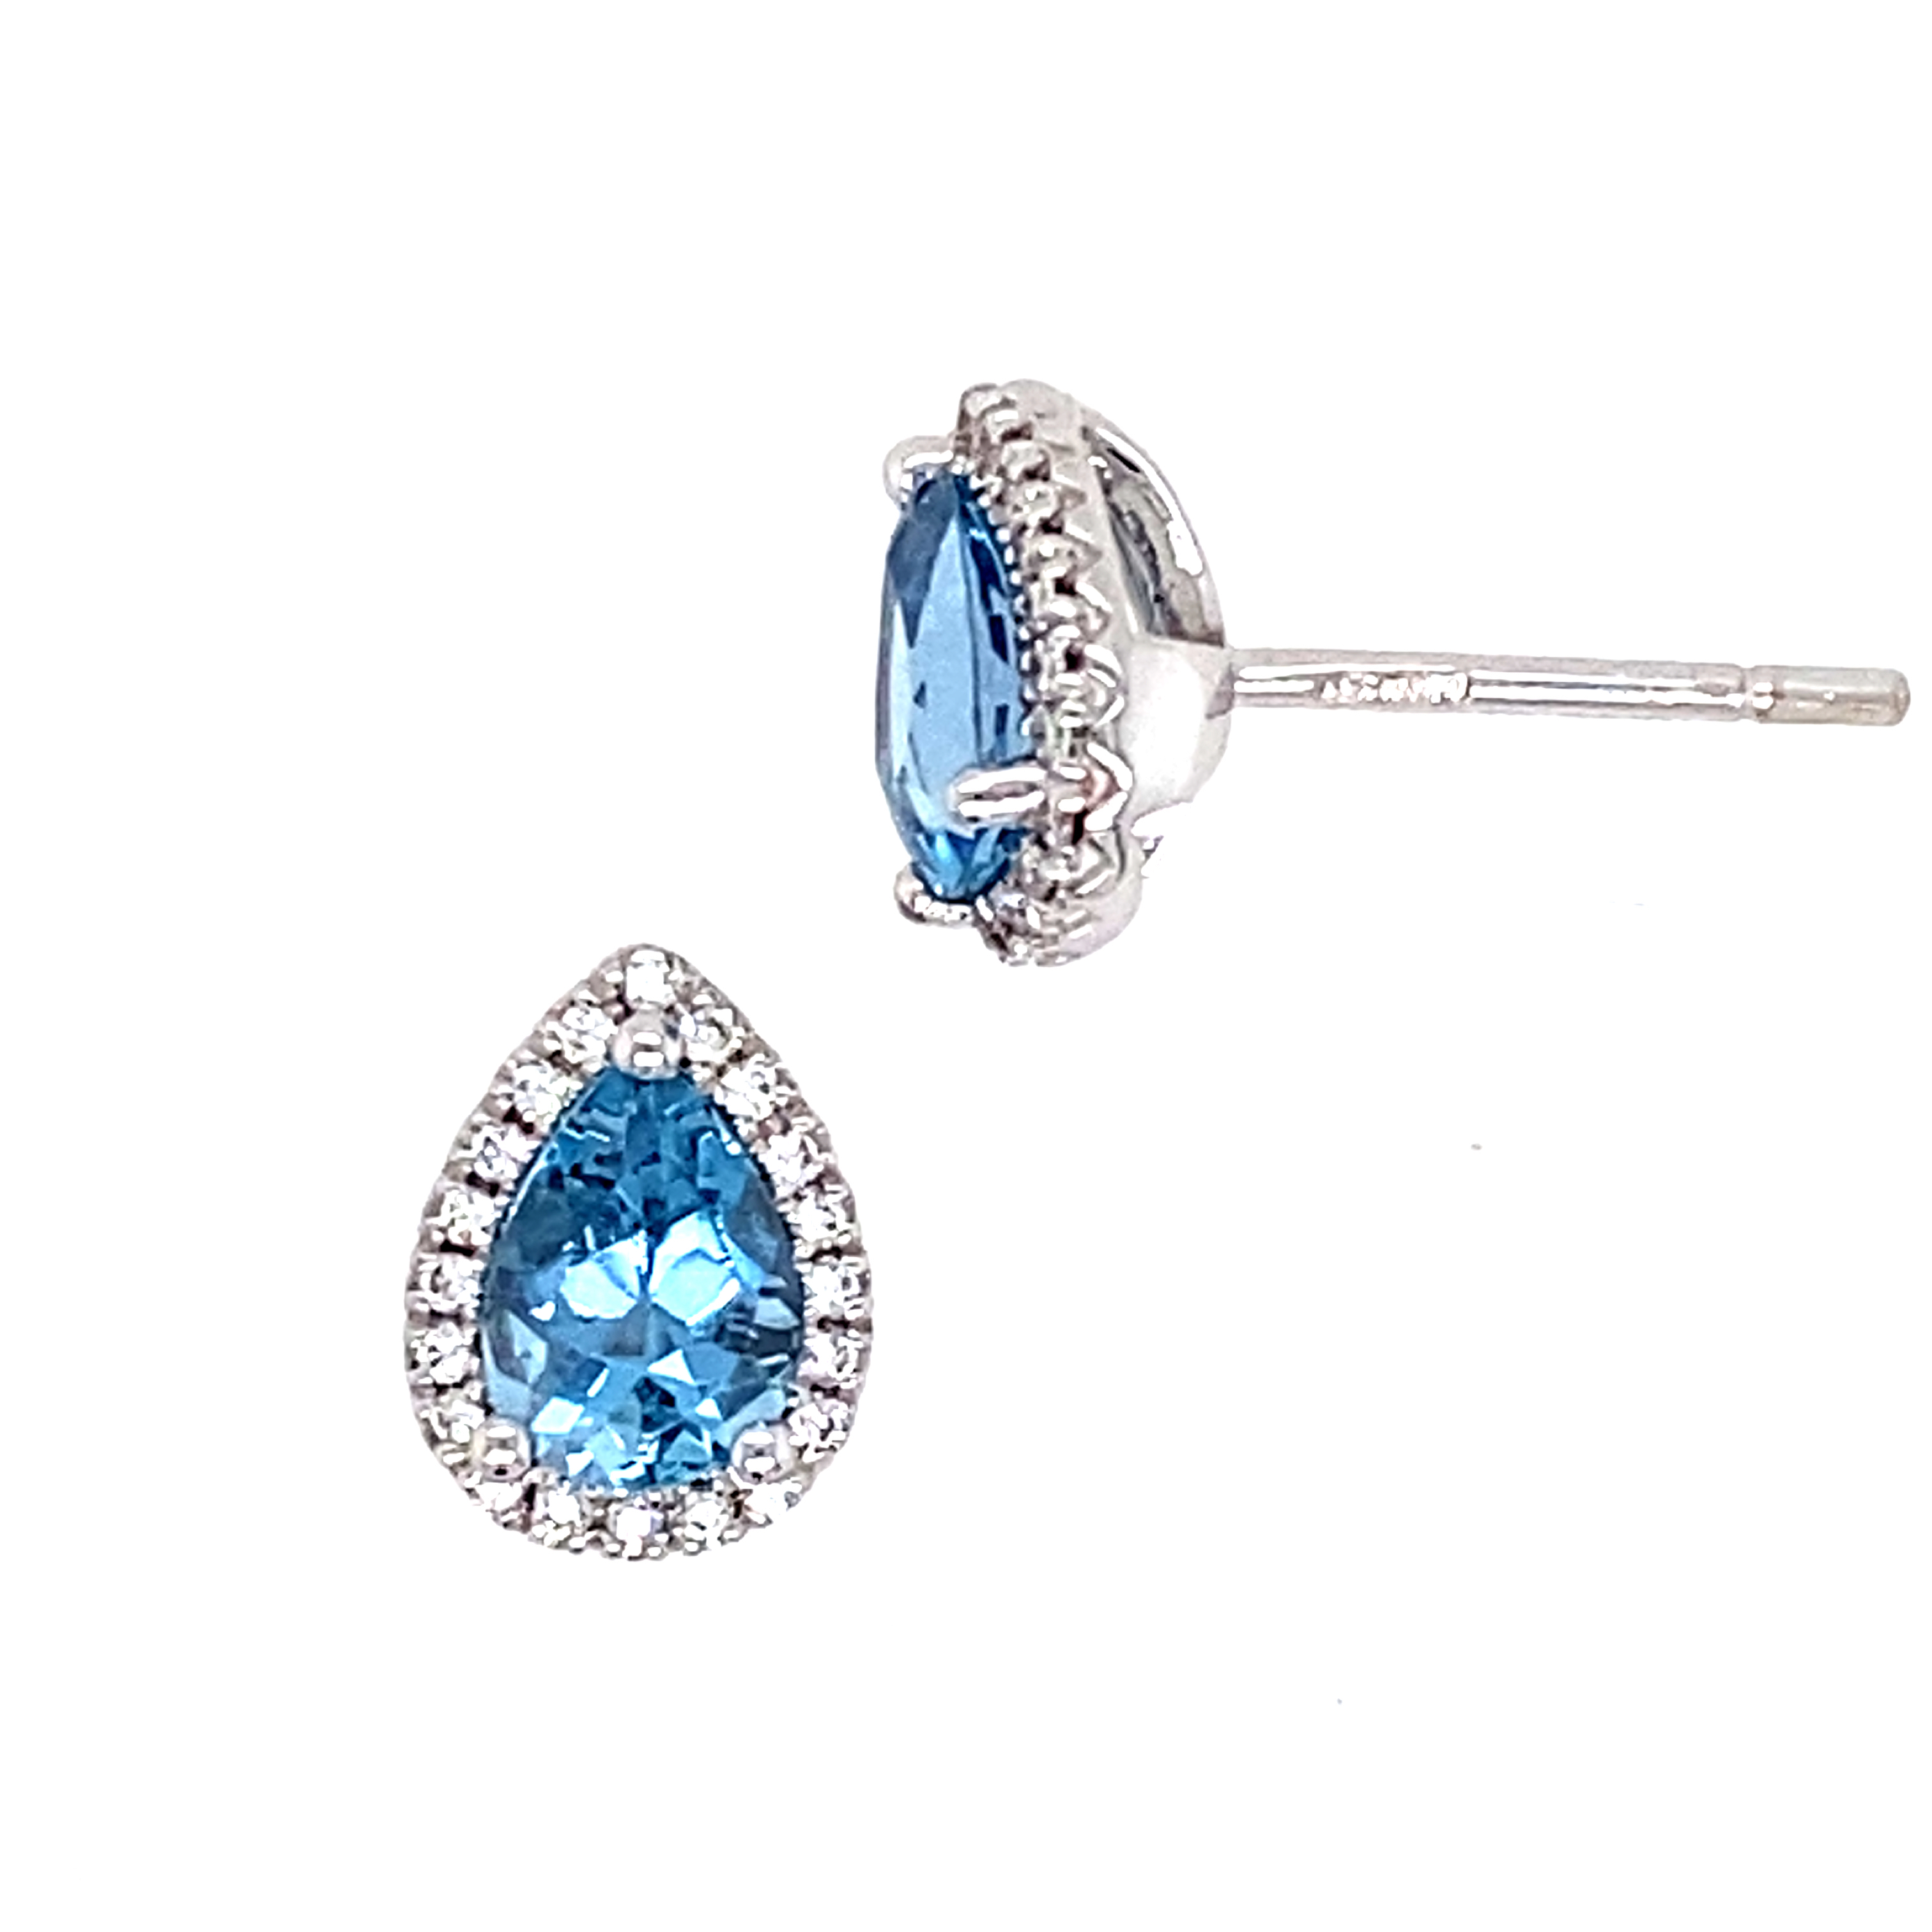 18ct White Gold Aquamarine and Diamond Stud Earrings